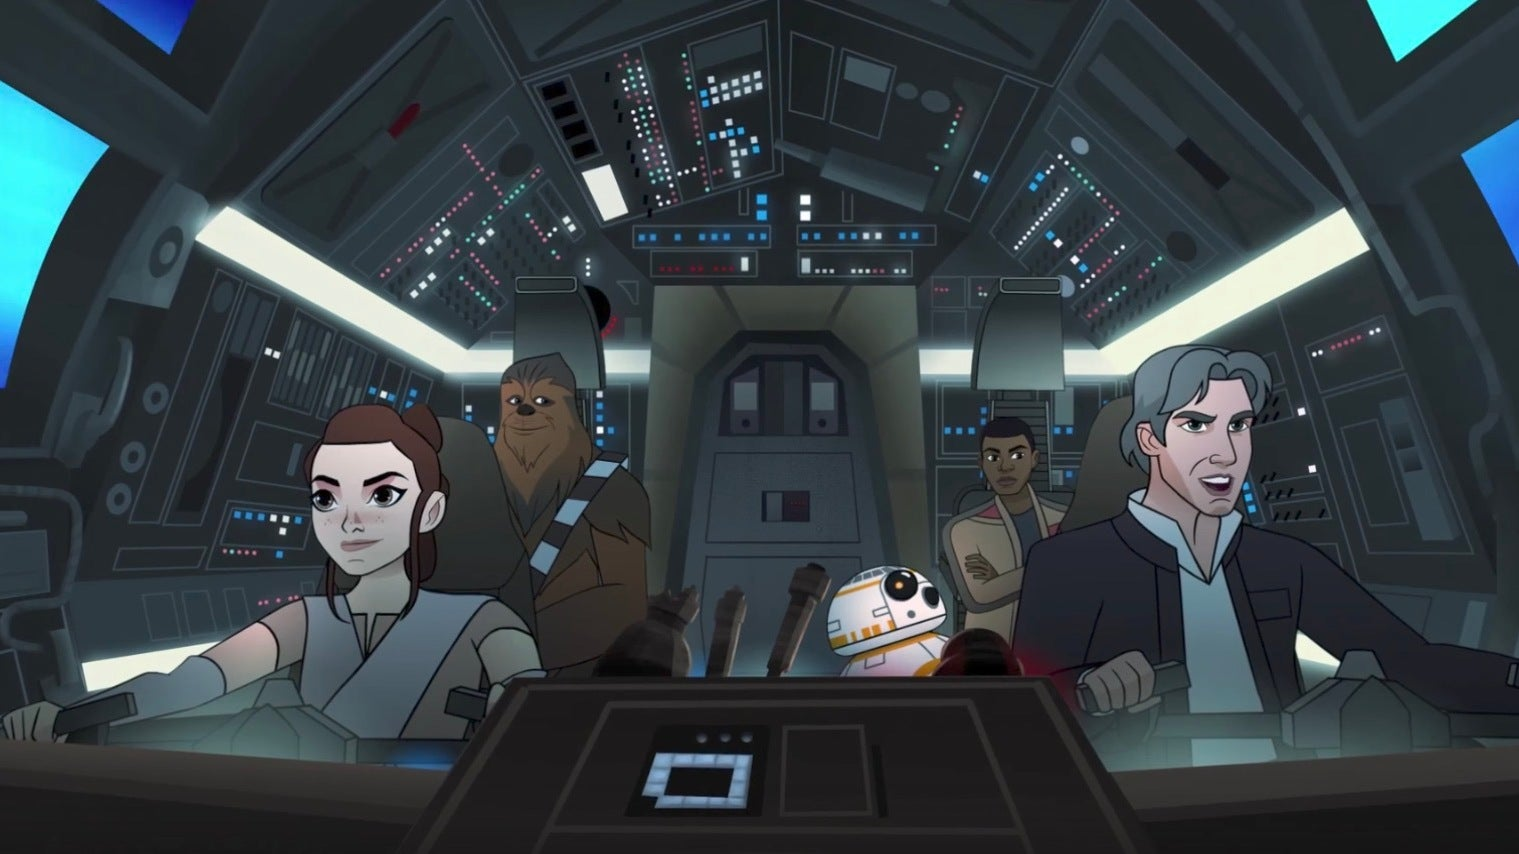 The Millennium Falcon Almost Explodes In A New Star Wars: Forces Of Destiny Short